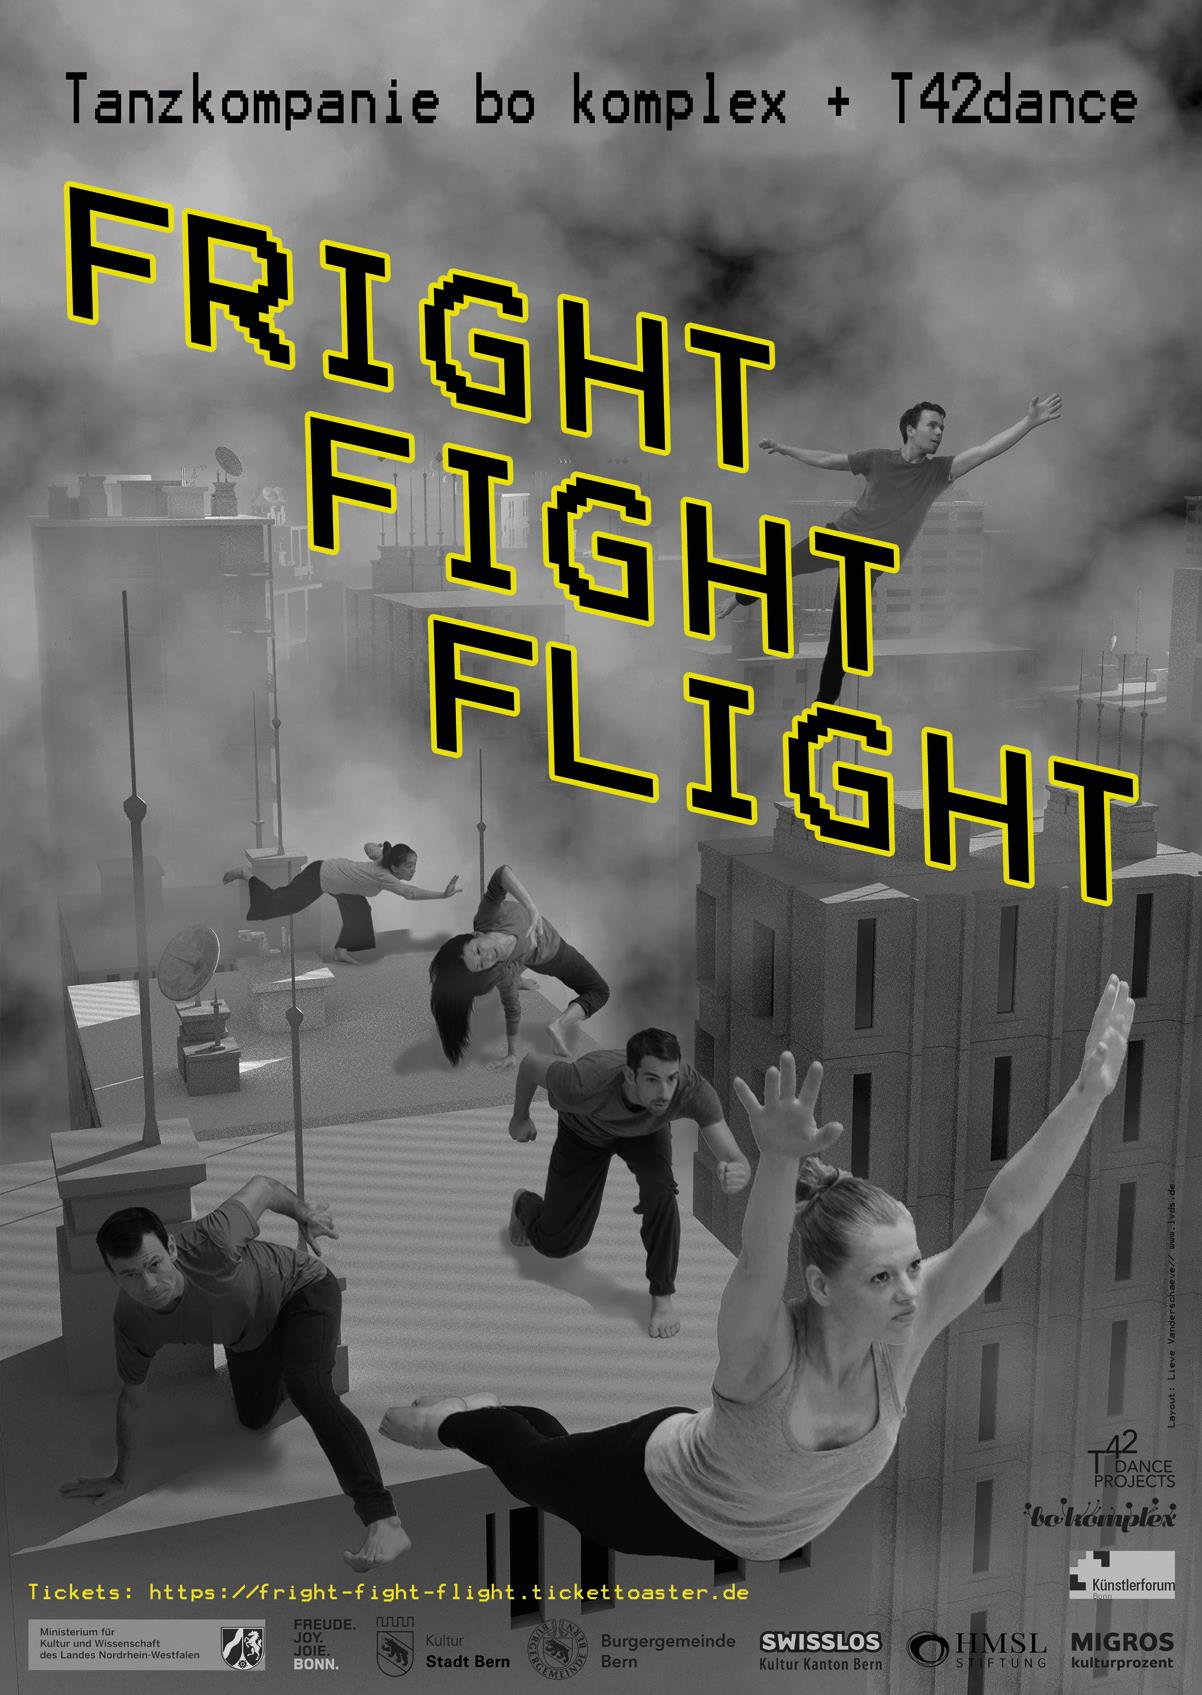 FRIGHTFIGHTFLIGHT bo komplex - fright-fight-flight